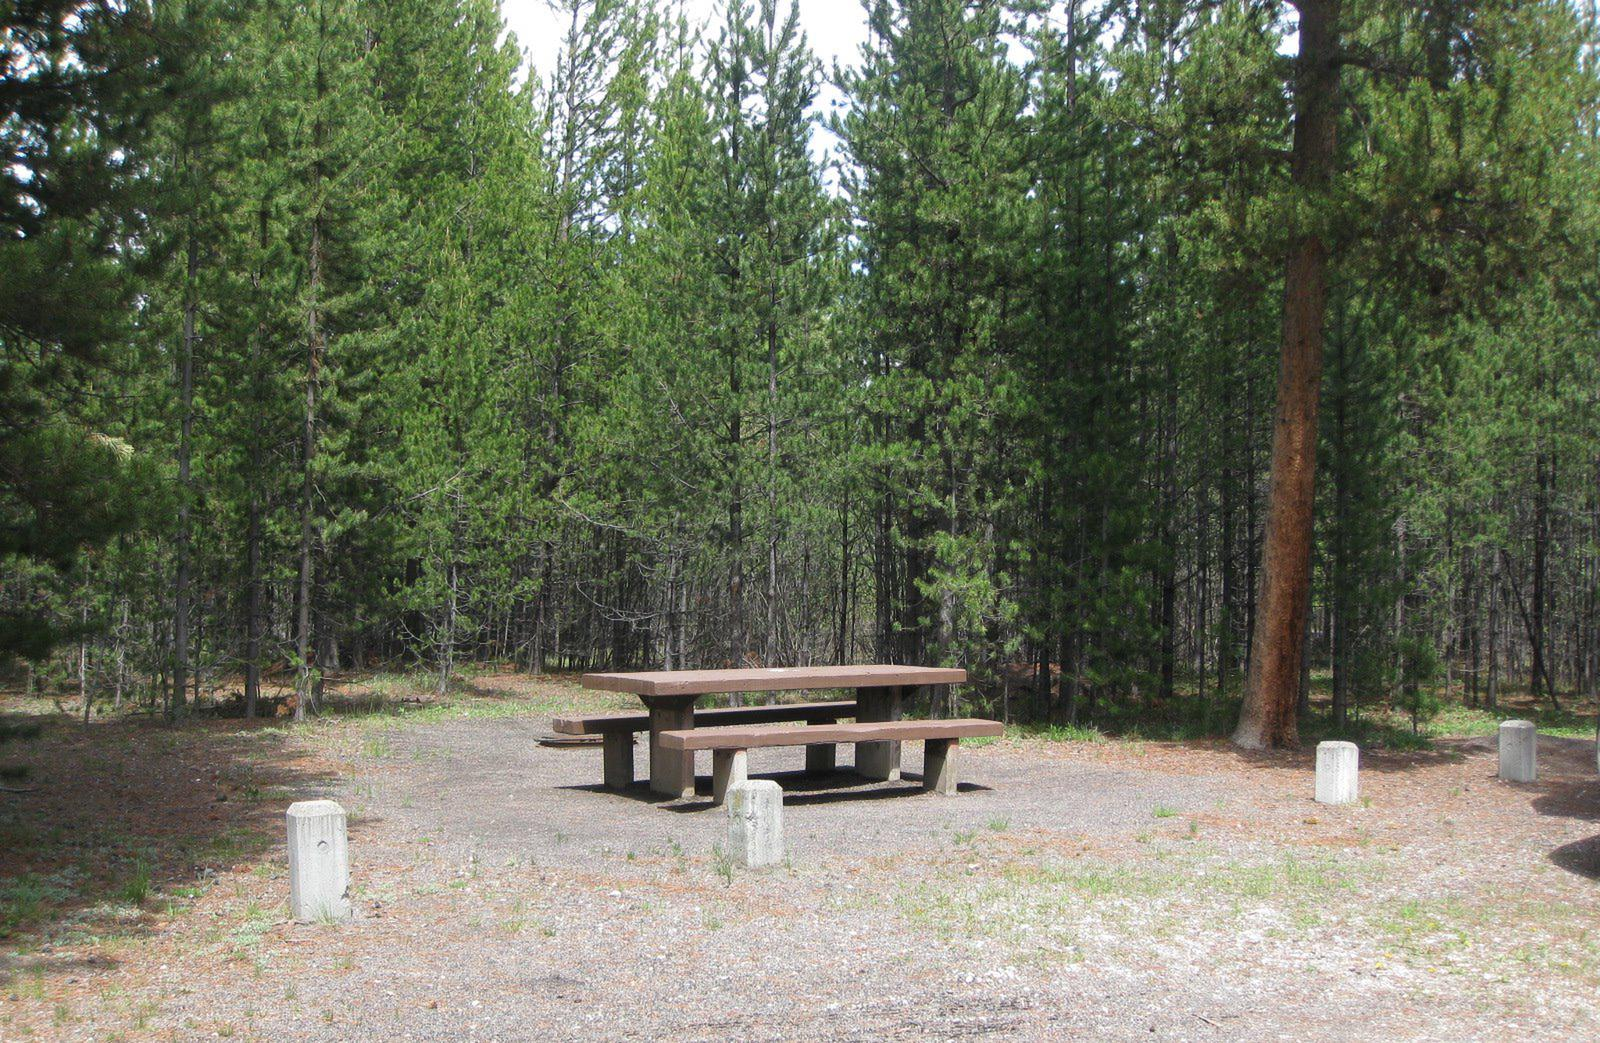 Site C27, surrounded by pine trees, picnic table & fire ringSite C27